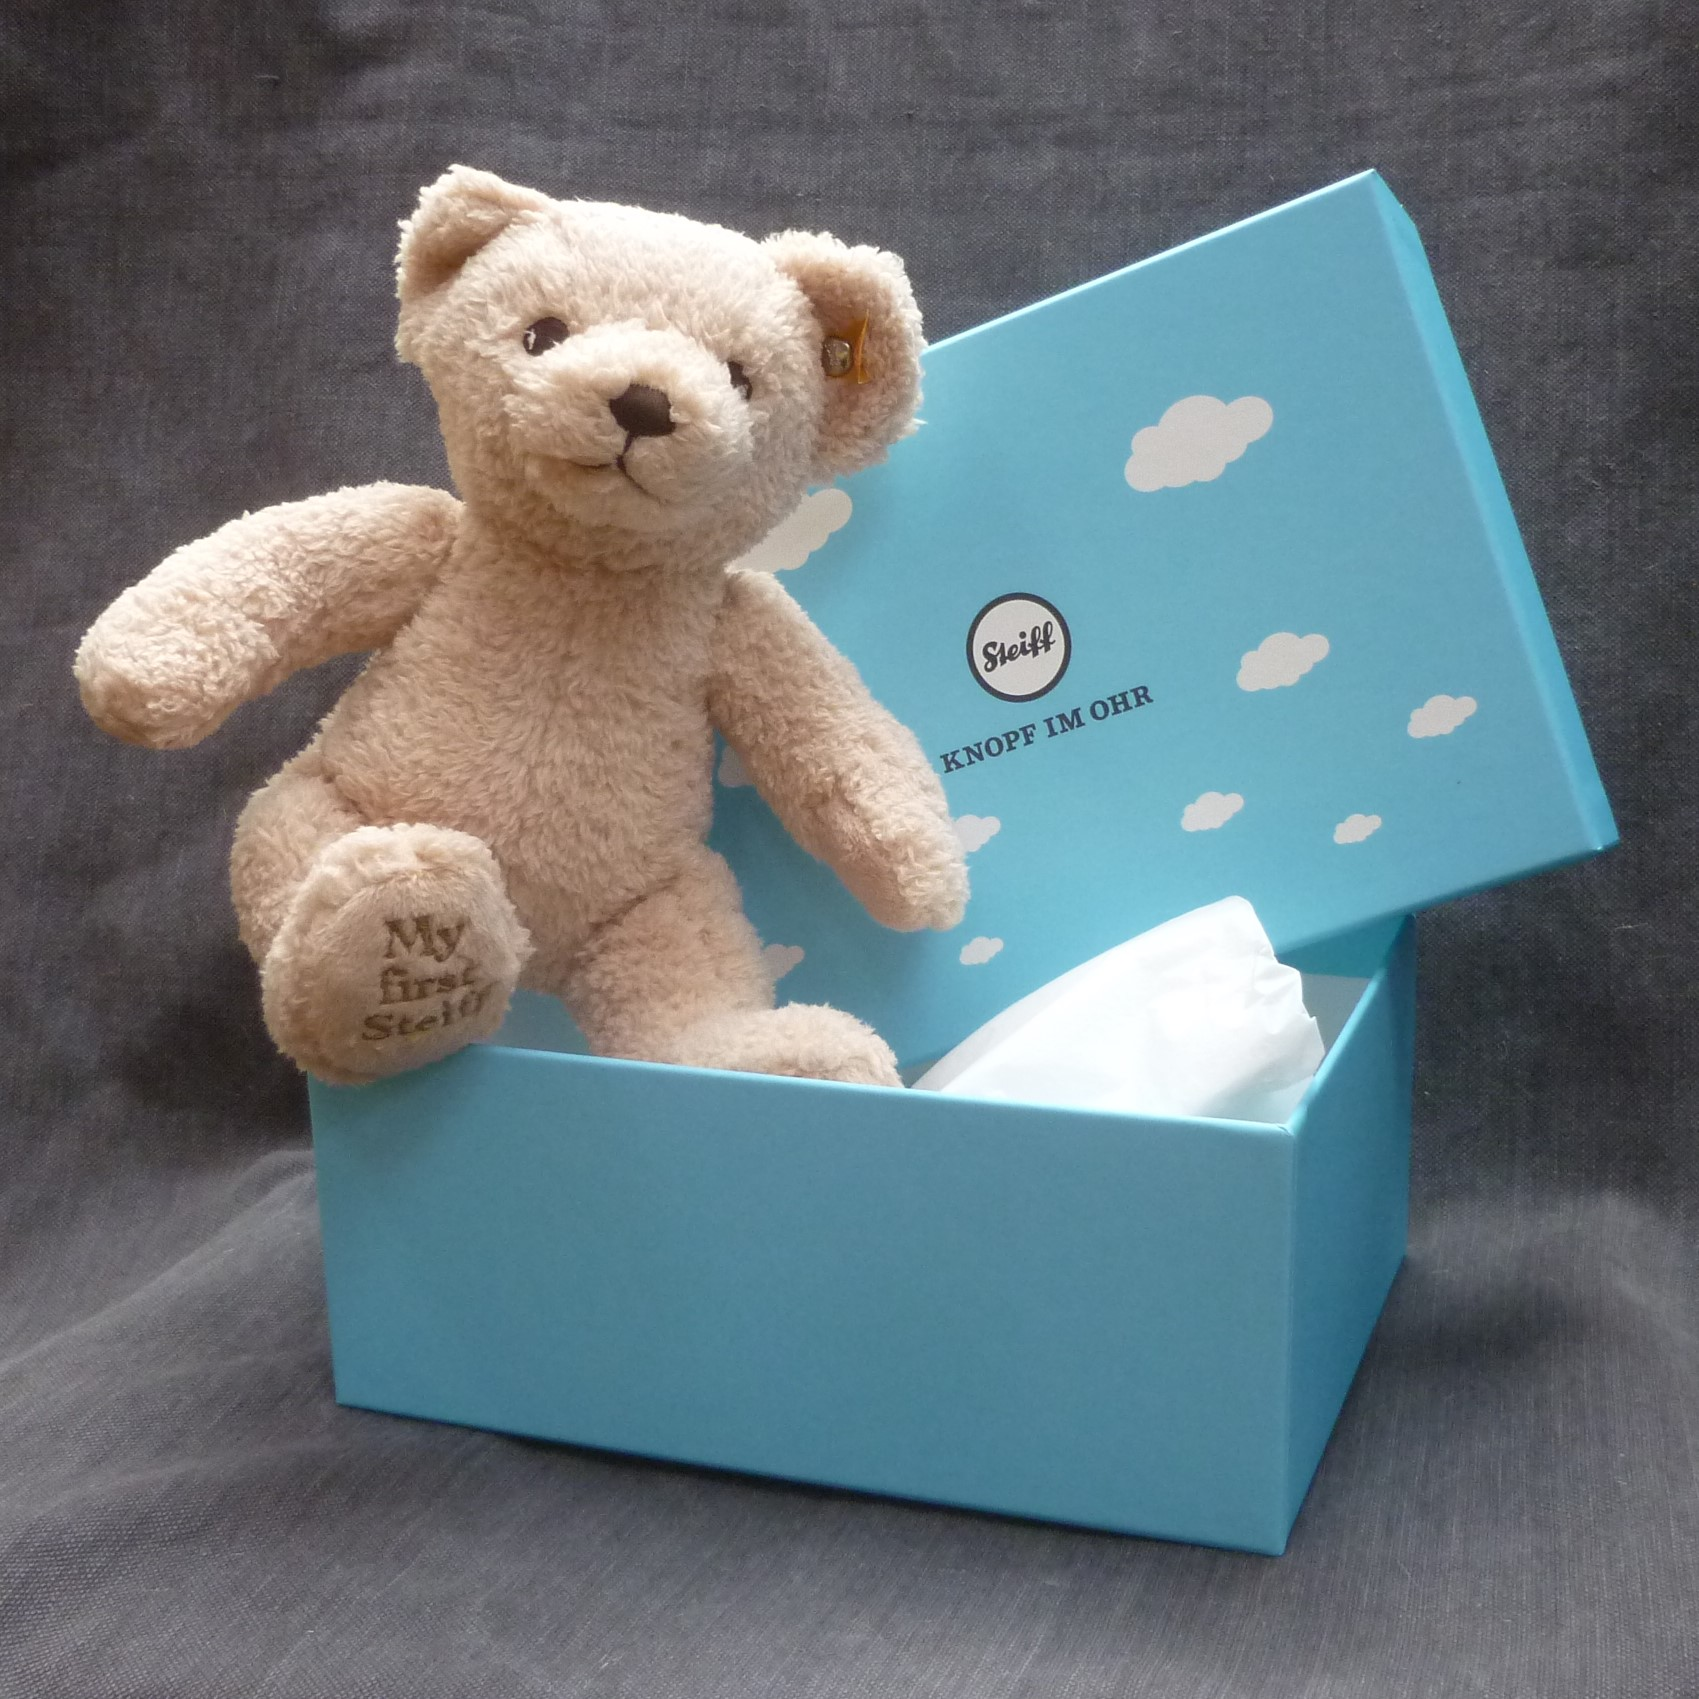 035d1bc07b95 My First Steiff Beige with Gift Box